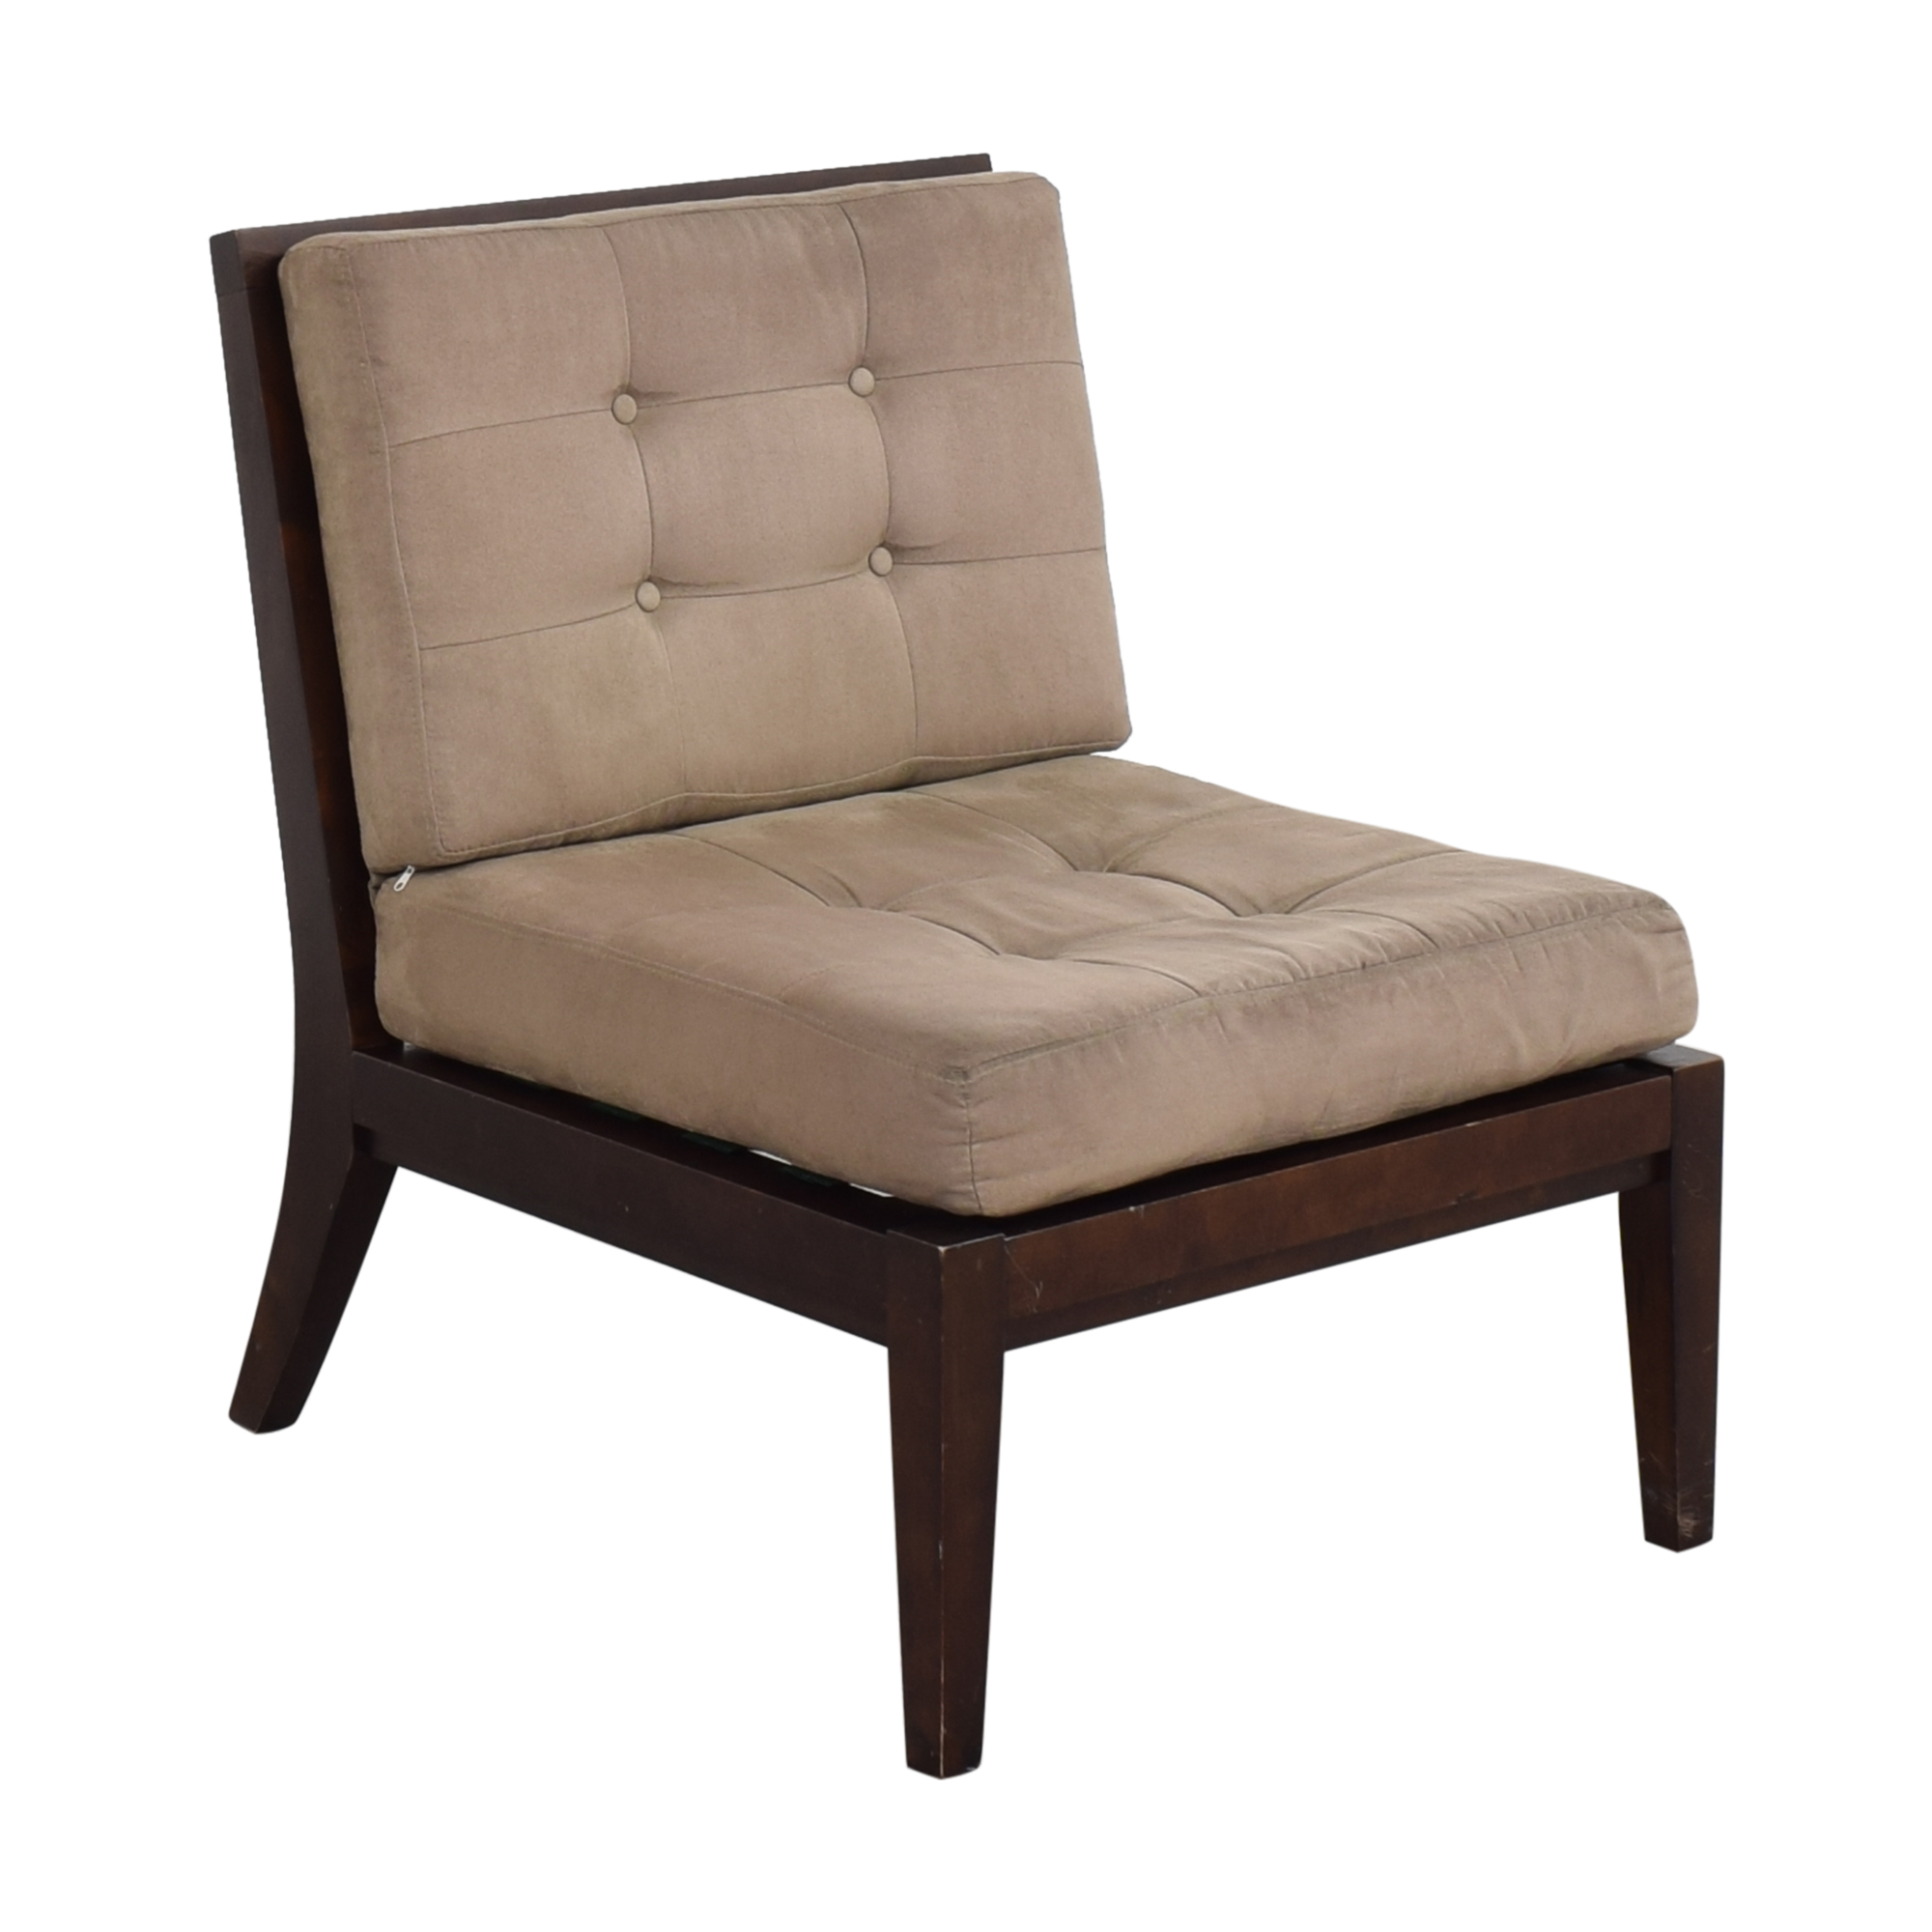 Crate & Barrel Crate & Barrel Armless Lounge Chair ma